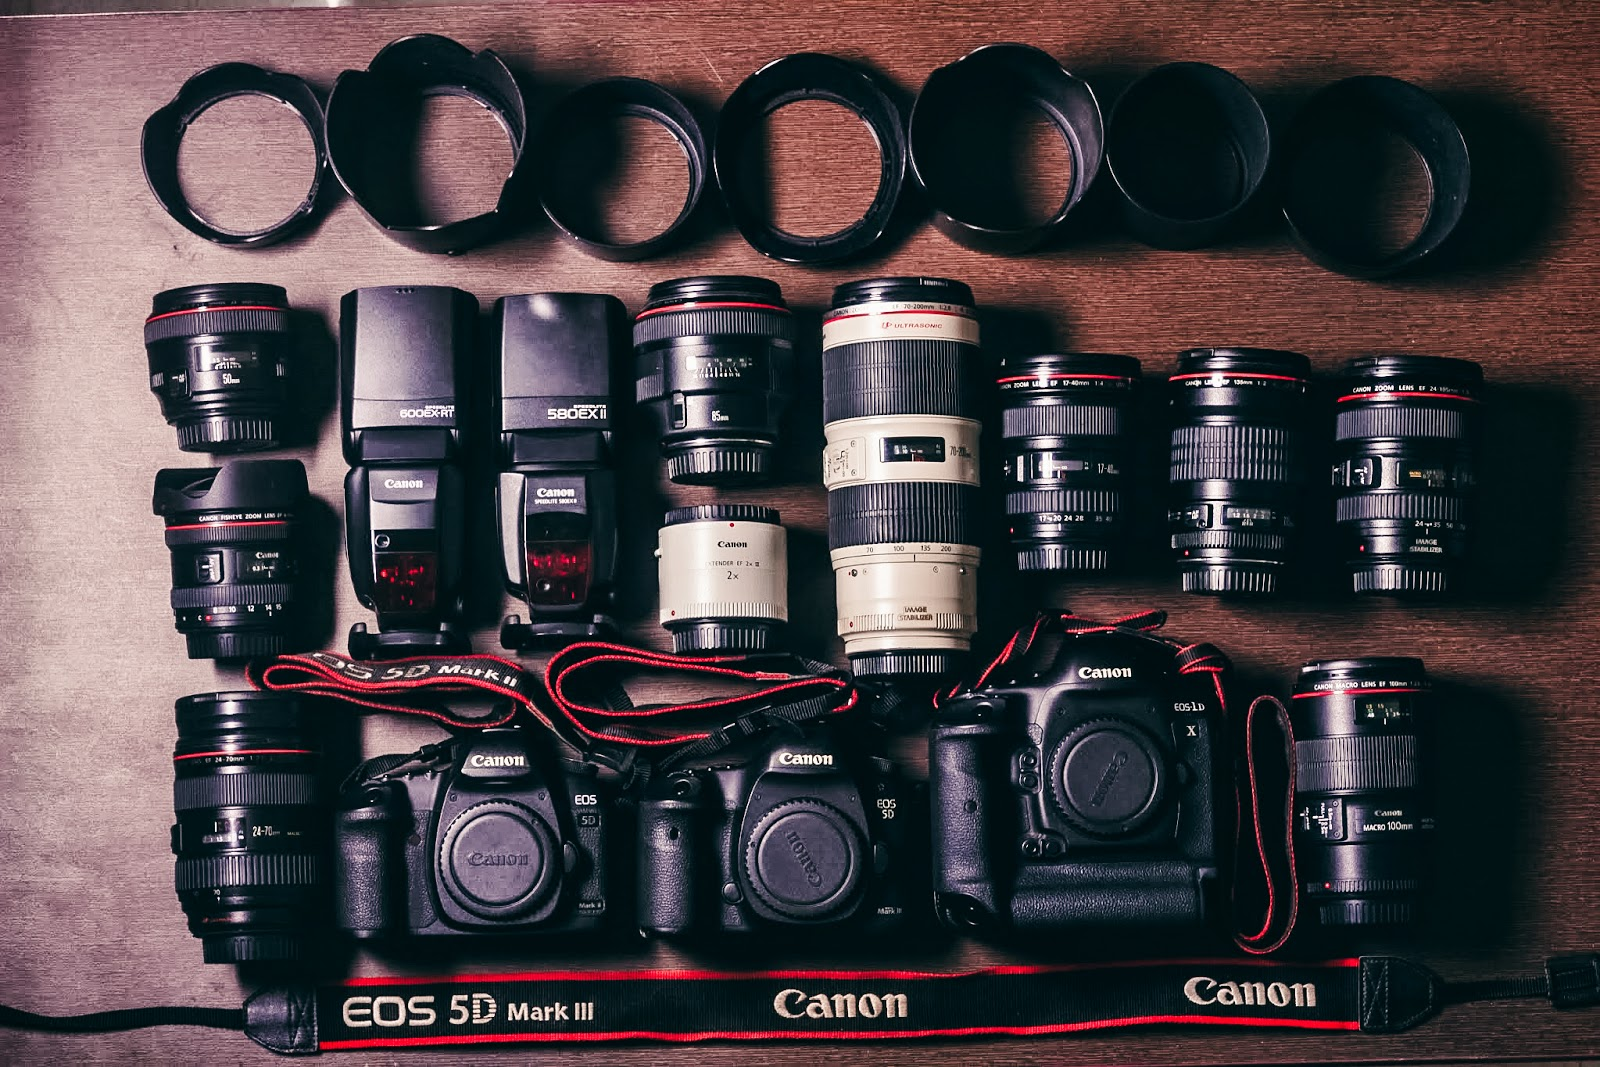 canon 5d mark 3 gear